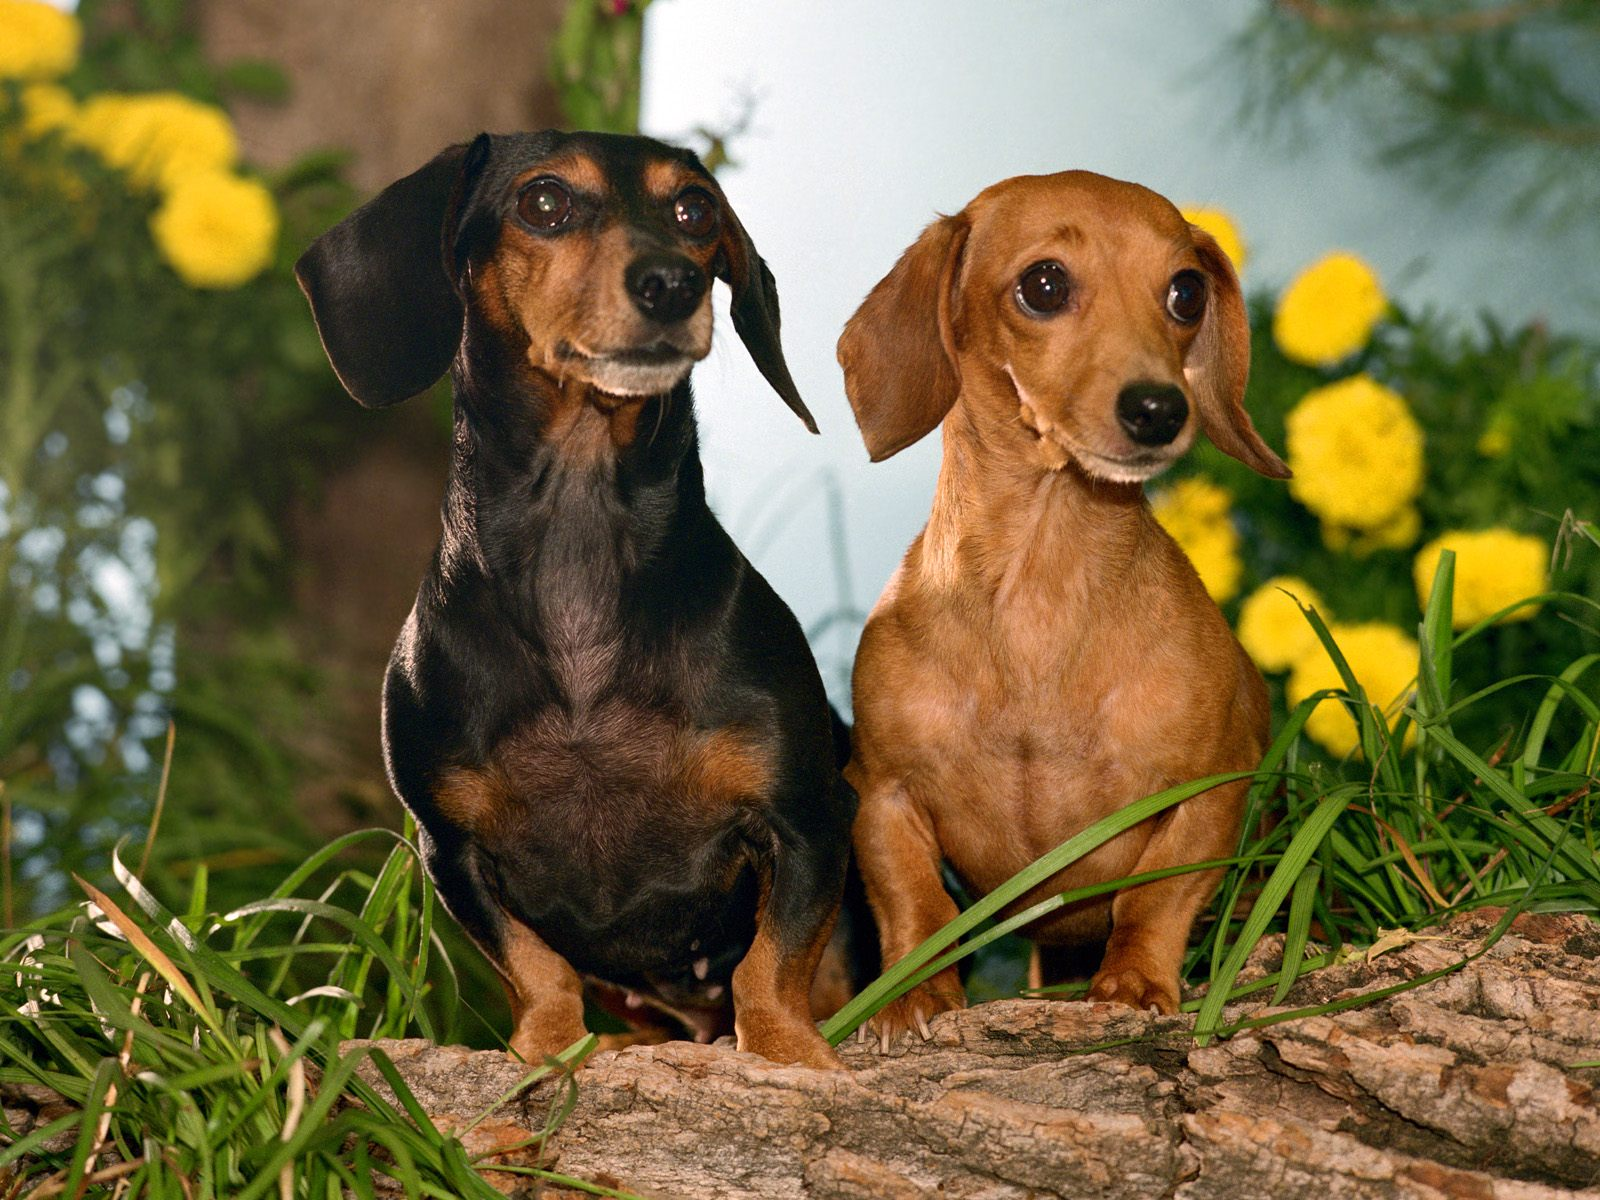 M And S Dachshund Pictures for Everyone,...